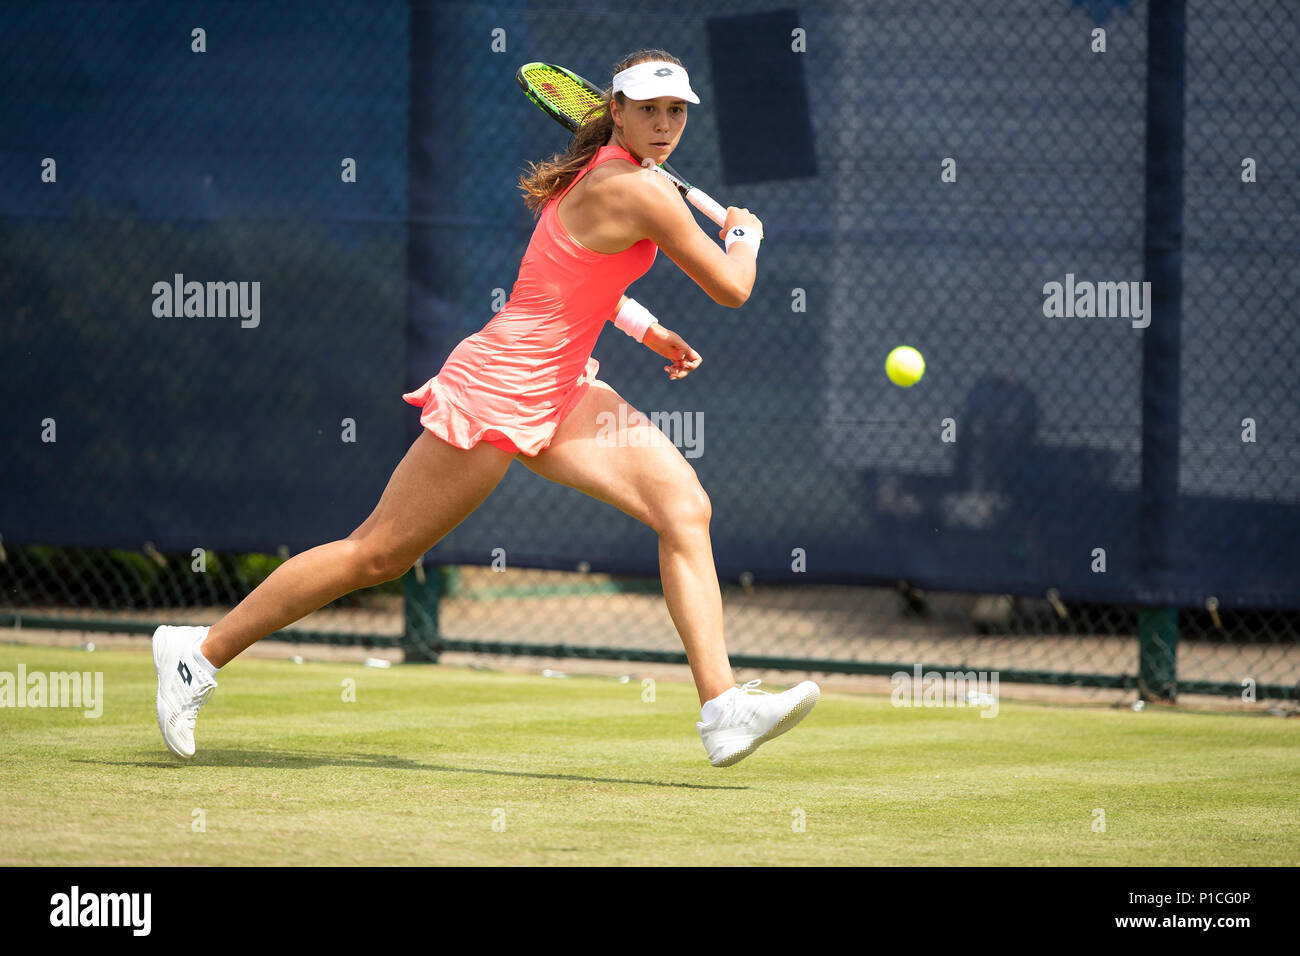 Nottingham Tennis Centre, Nottingham, UK. 11th June, 2018. The Nature Valley Open Tennis Tournament; Vera Lapko (BLR) plays a running backhand as she wins the first set against Jana Fett (CRO) Credit: Action Plus Sports/Alamy Live News - Stock Image